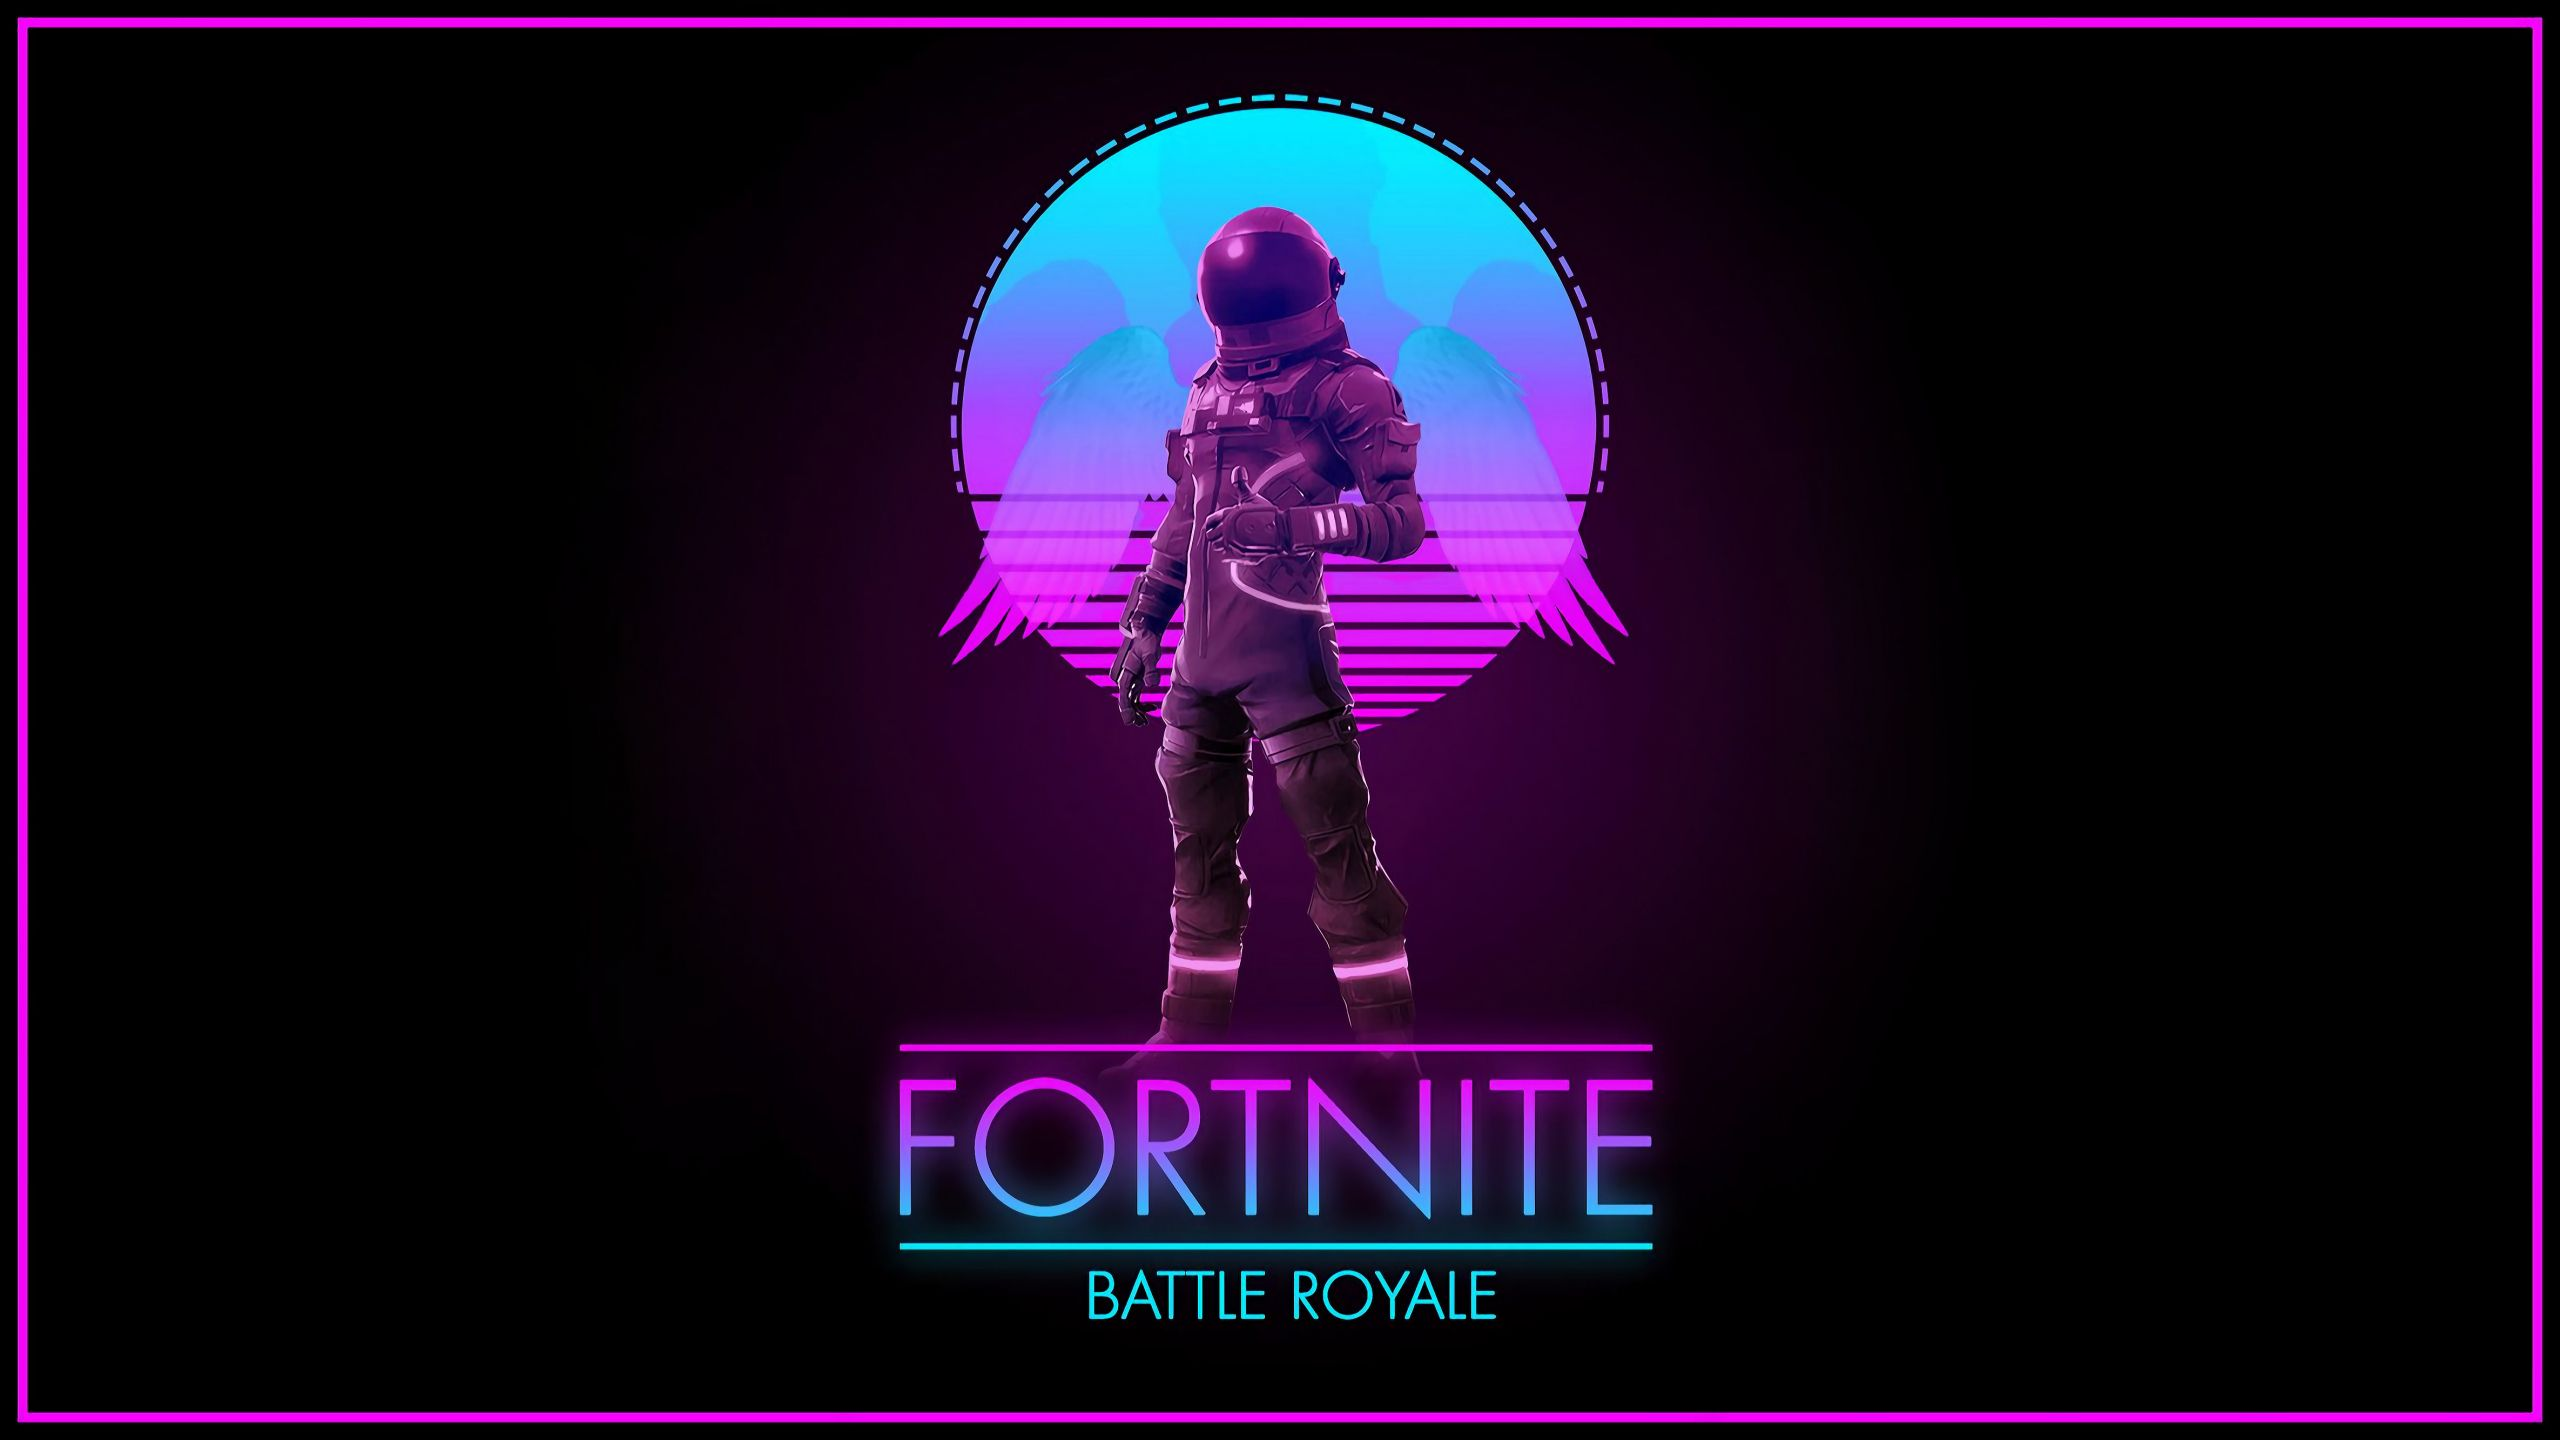 Fortnite - Synthwave Royale wallpaper in 2560x1440 resolution